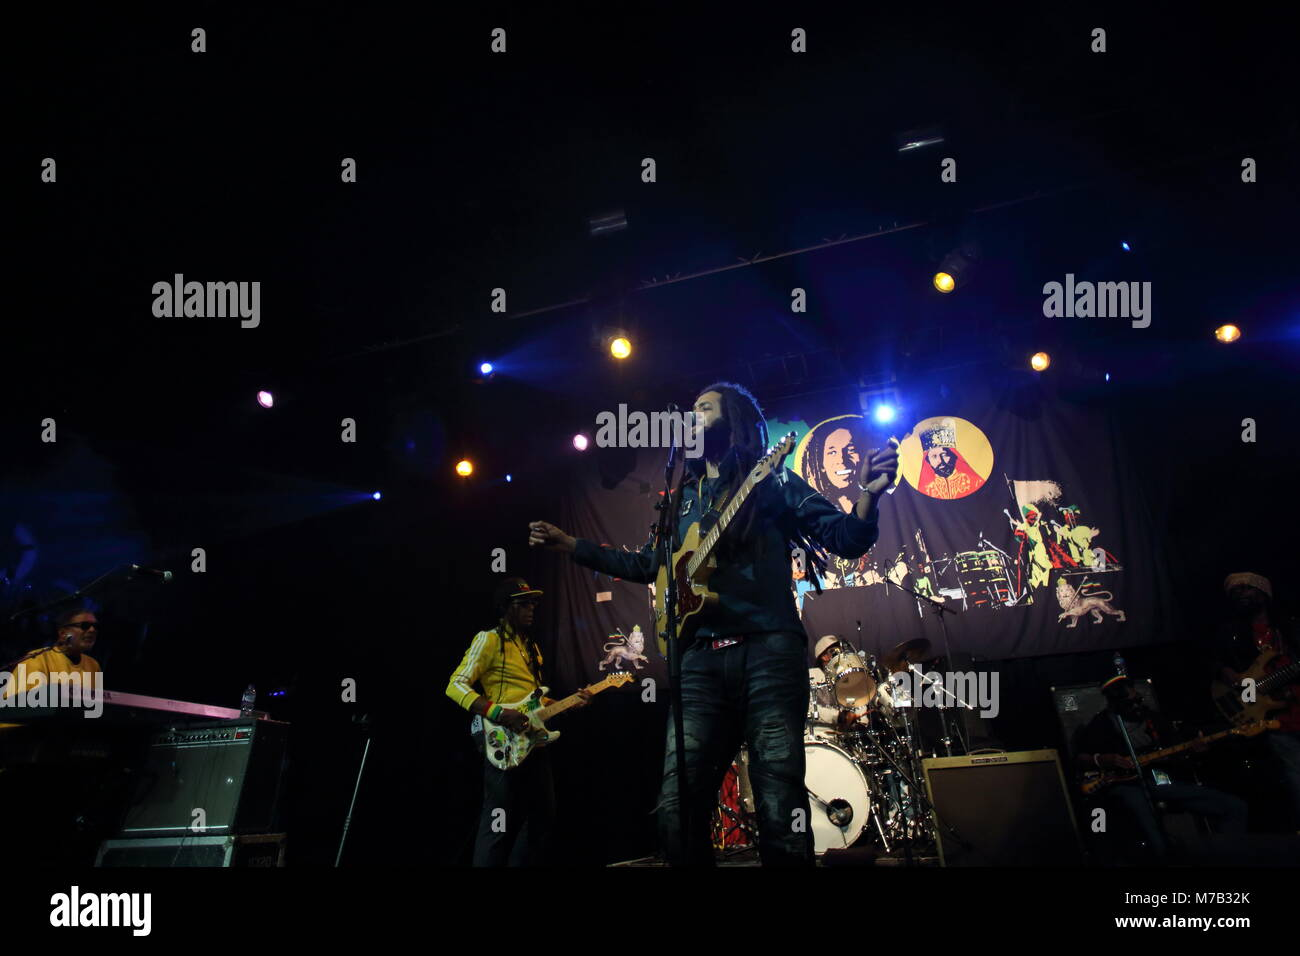 Manchester, UK. 9th March, 2018. The Wailers perform live at Manchester Academy. Credit: Simon Newbury/Alamy Live - Stock Image